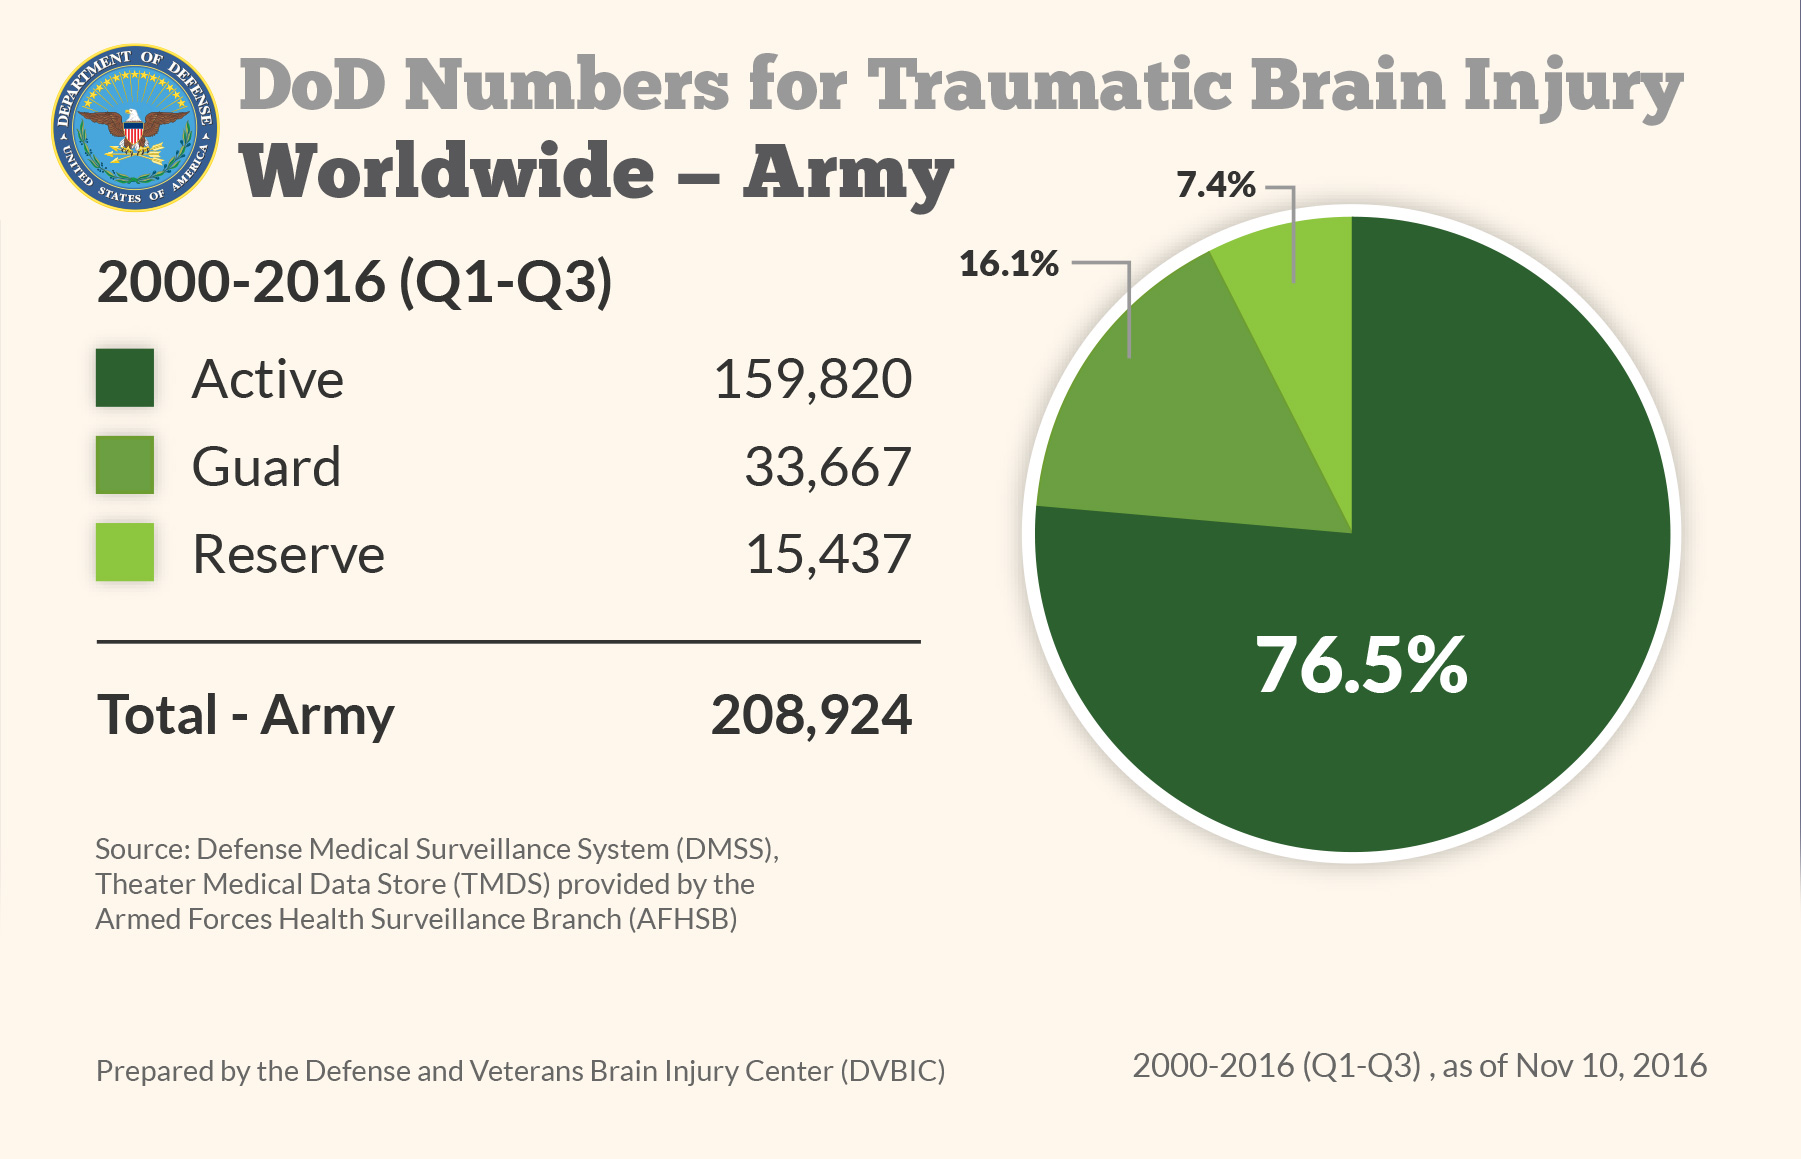 DoD Numbers for Traumatic Brain Injury Worldwide - Army